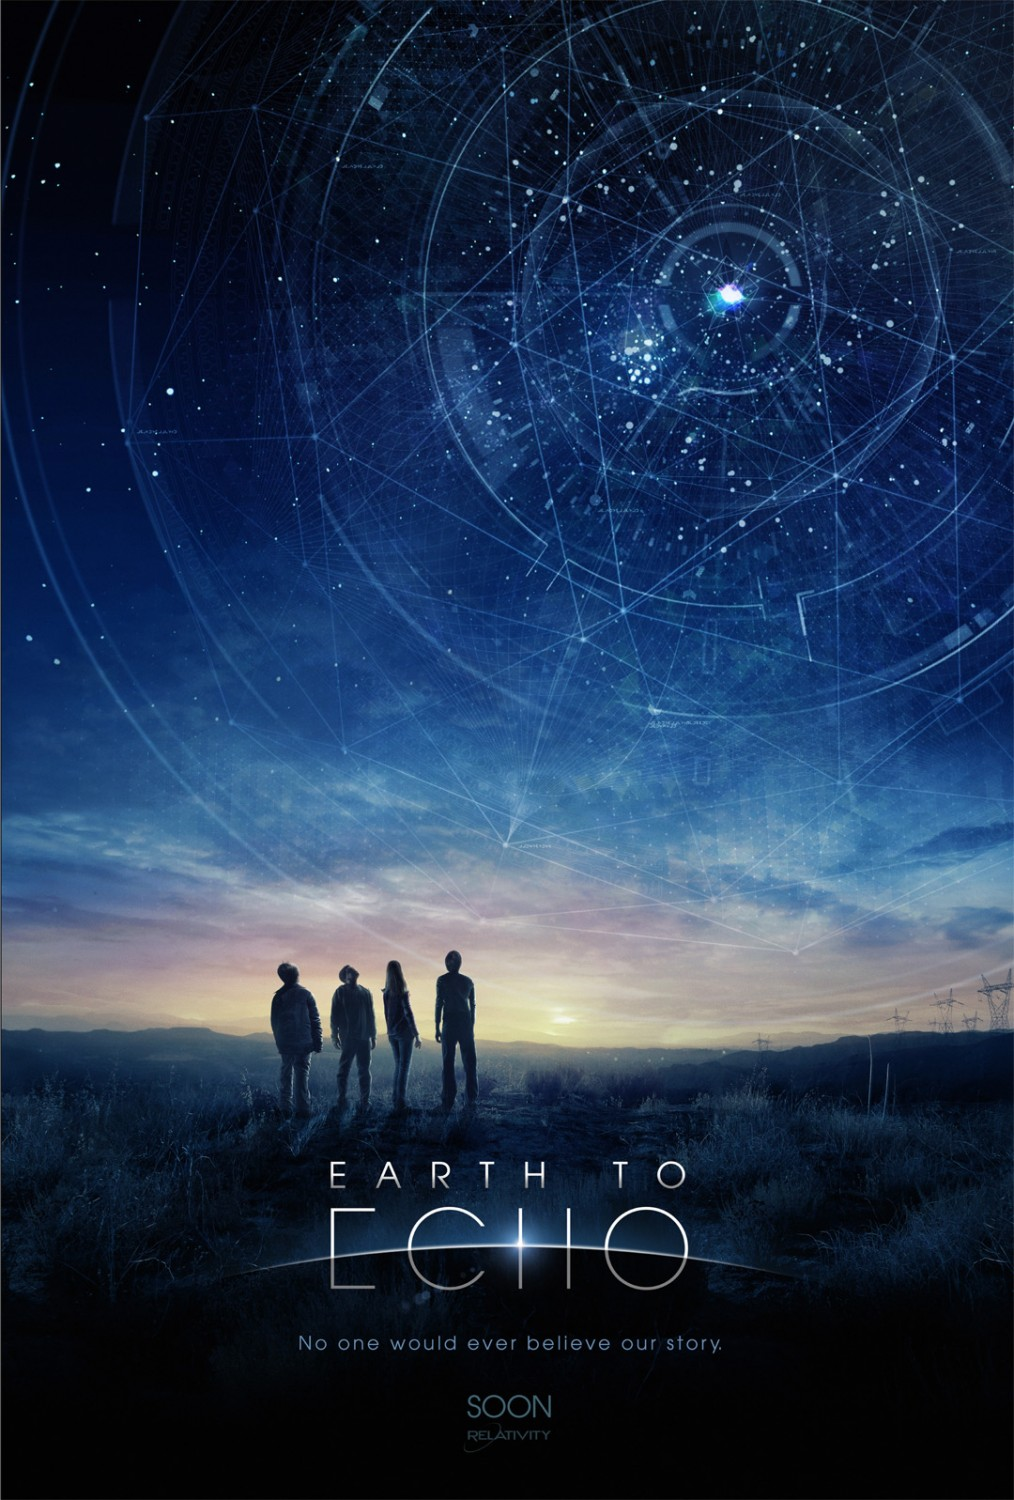 EARTH TO ECHO-Official Poster Banner PROMO POSTER BANNER-13DEZEMBRO2013-02